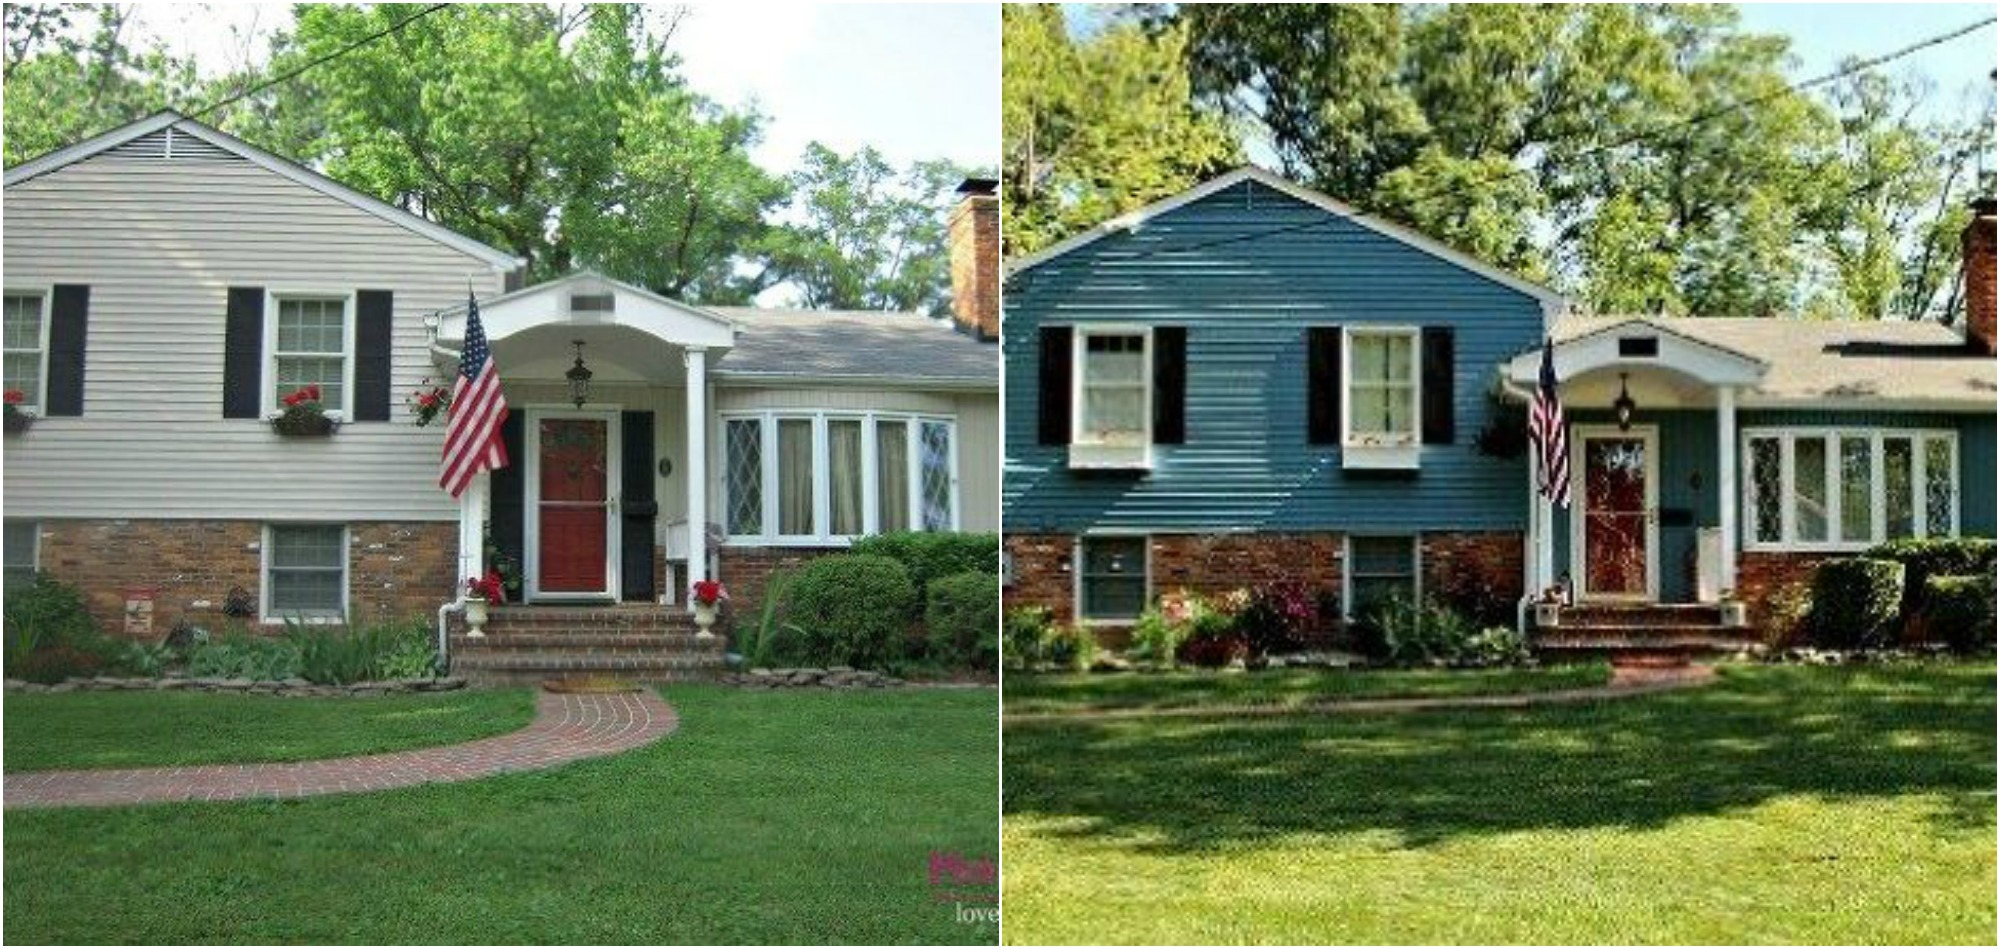 9 Incredible Home Exterior Makeovers